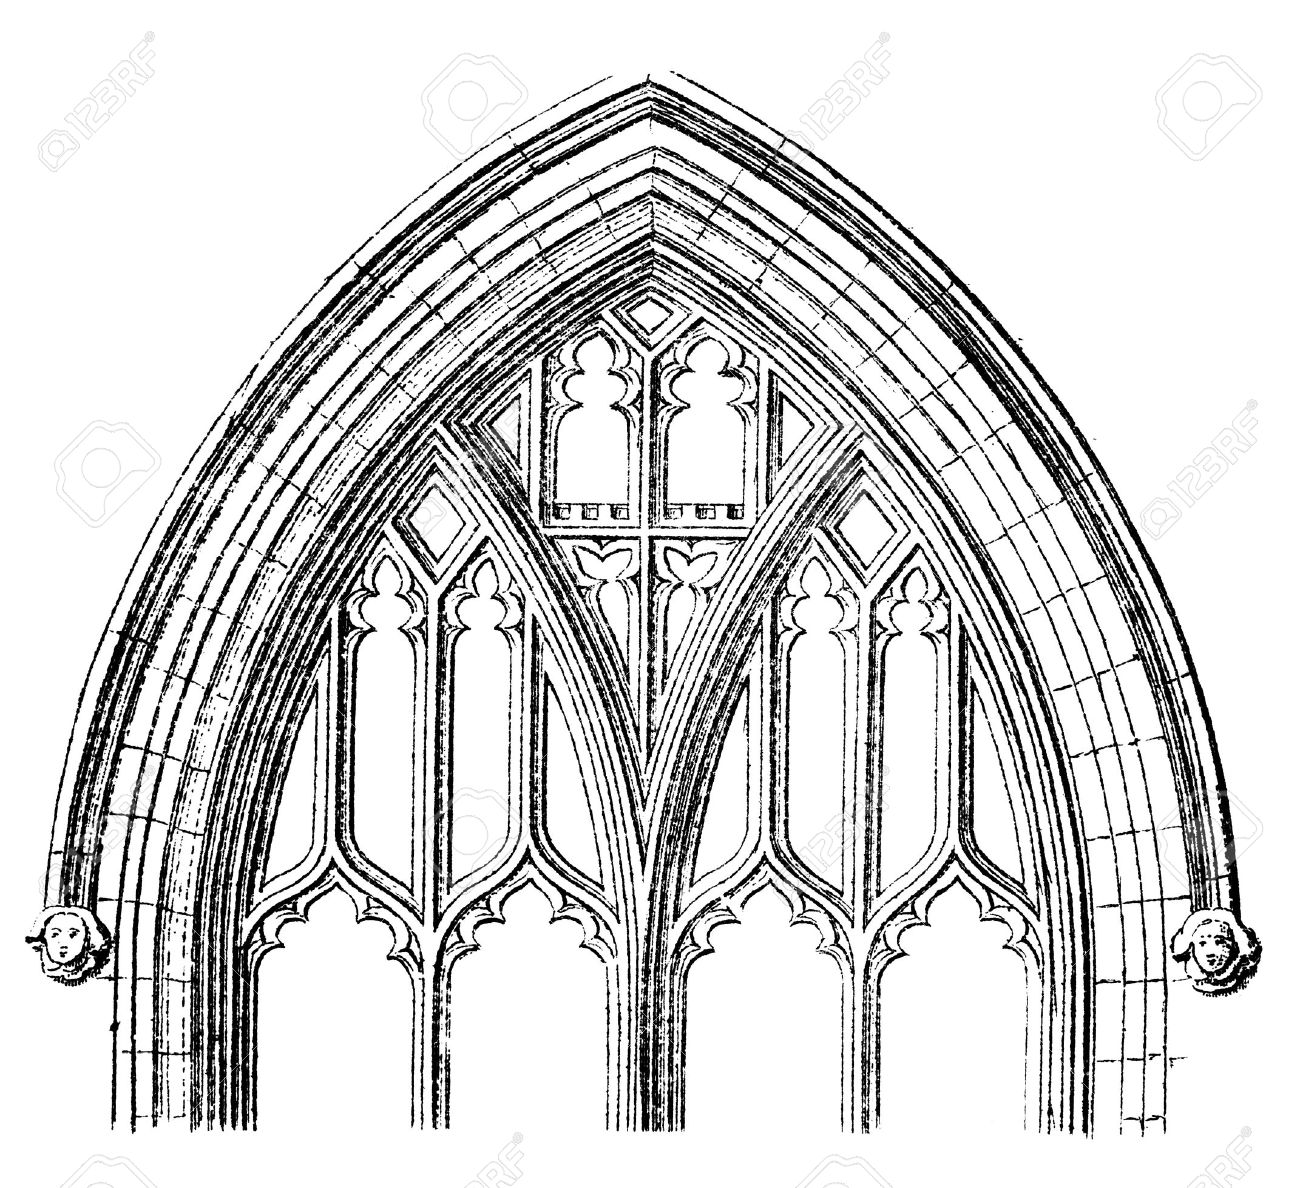 Victorian Engraving Of A Gothic Cathedral Window Arch Digitally Restored Image